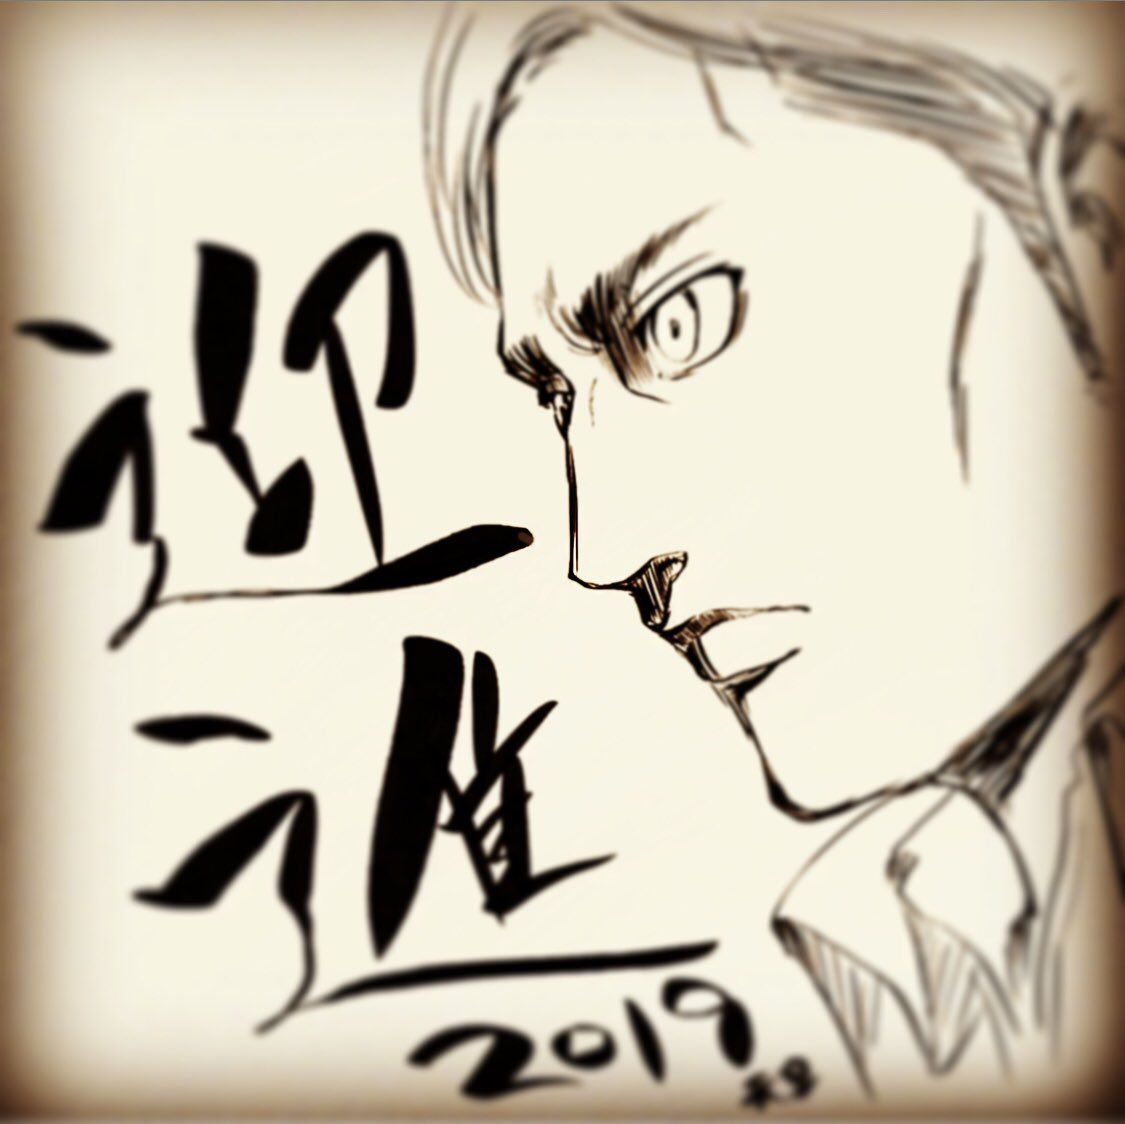 Attack on Titan Duplicate Autograph Erwin Smith 13x13cm Anime NFS Japan F//S #